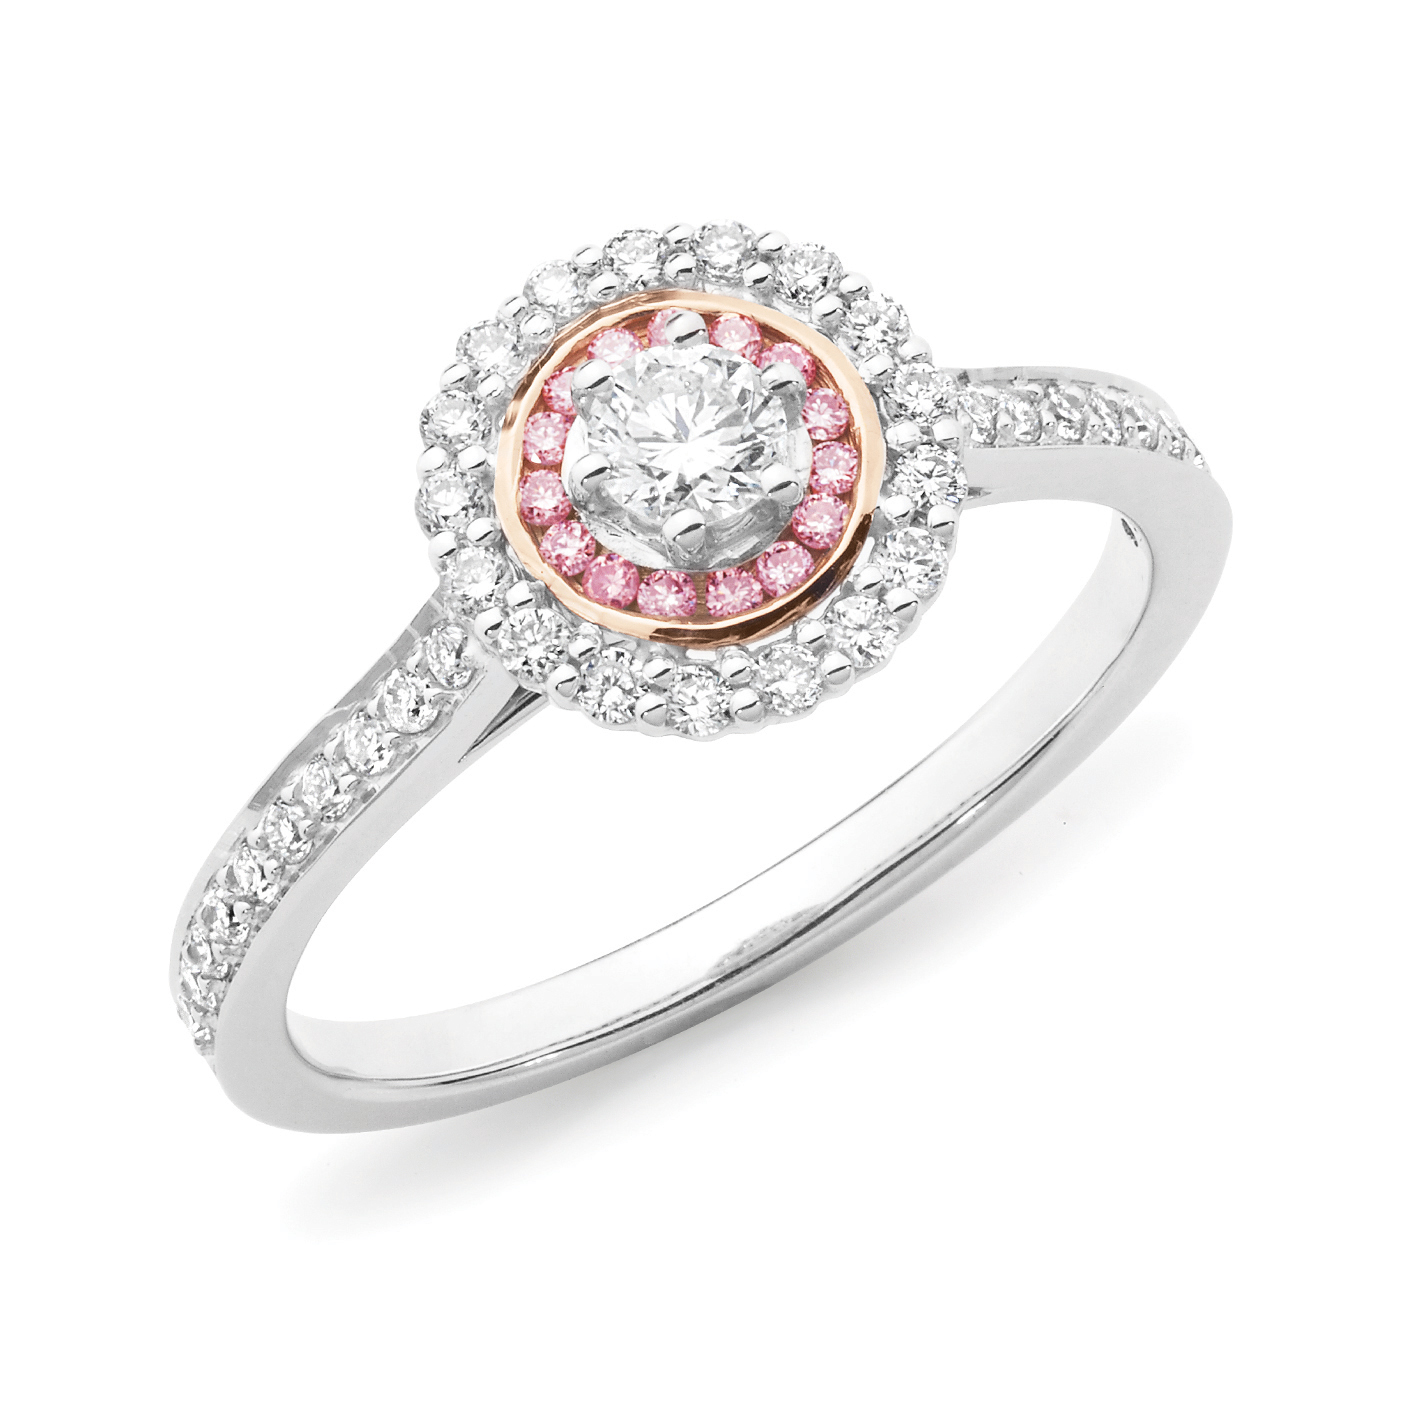 rbvaglopd ring to simple sapphire korea cahg silver south wedding product and pink standard pure japan for rings